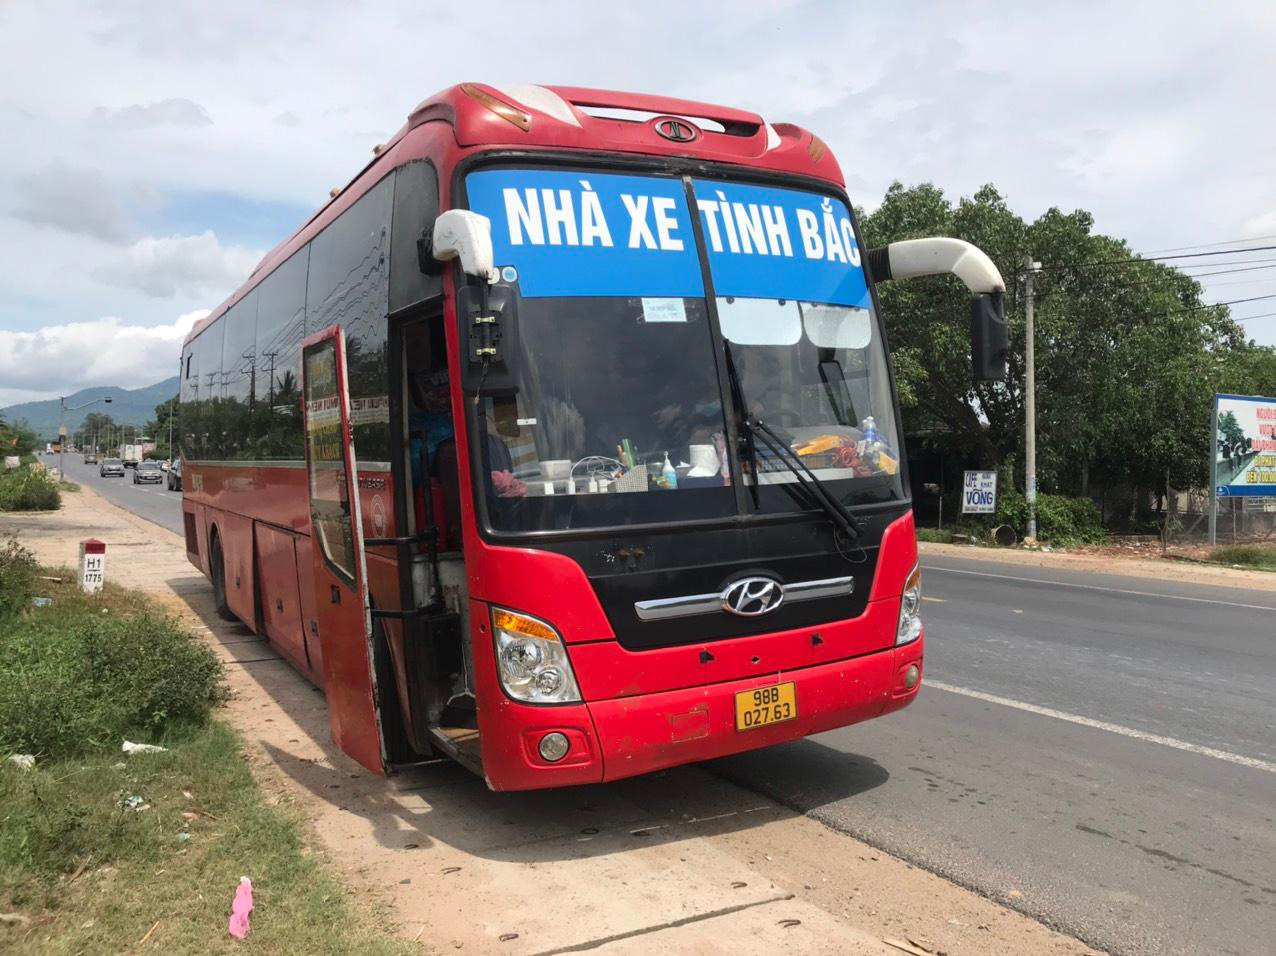 This supplied photo shows a passenger bus which was caught carrying five Chinese people without legal immigration documents hiding in carton boxes in Dong Nai Province, Vietnam.